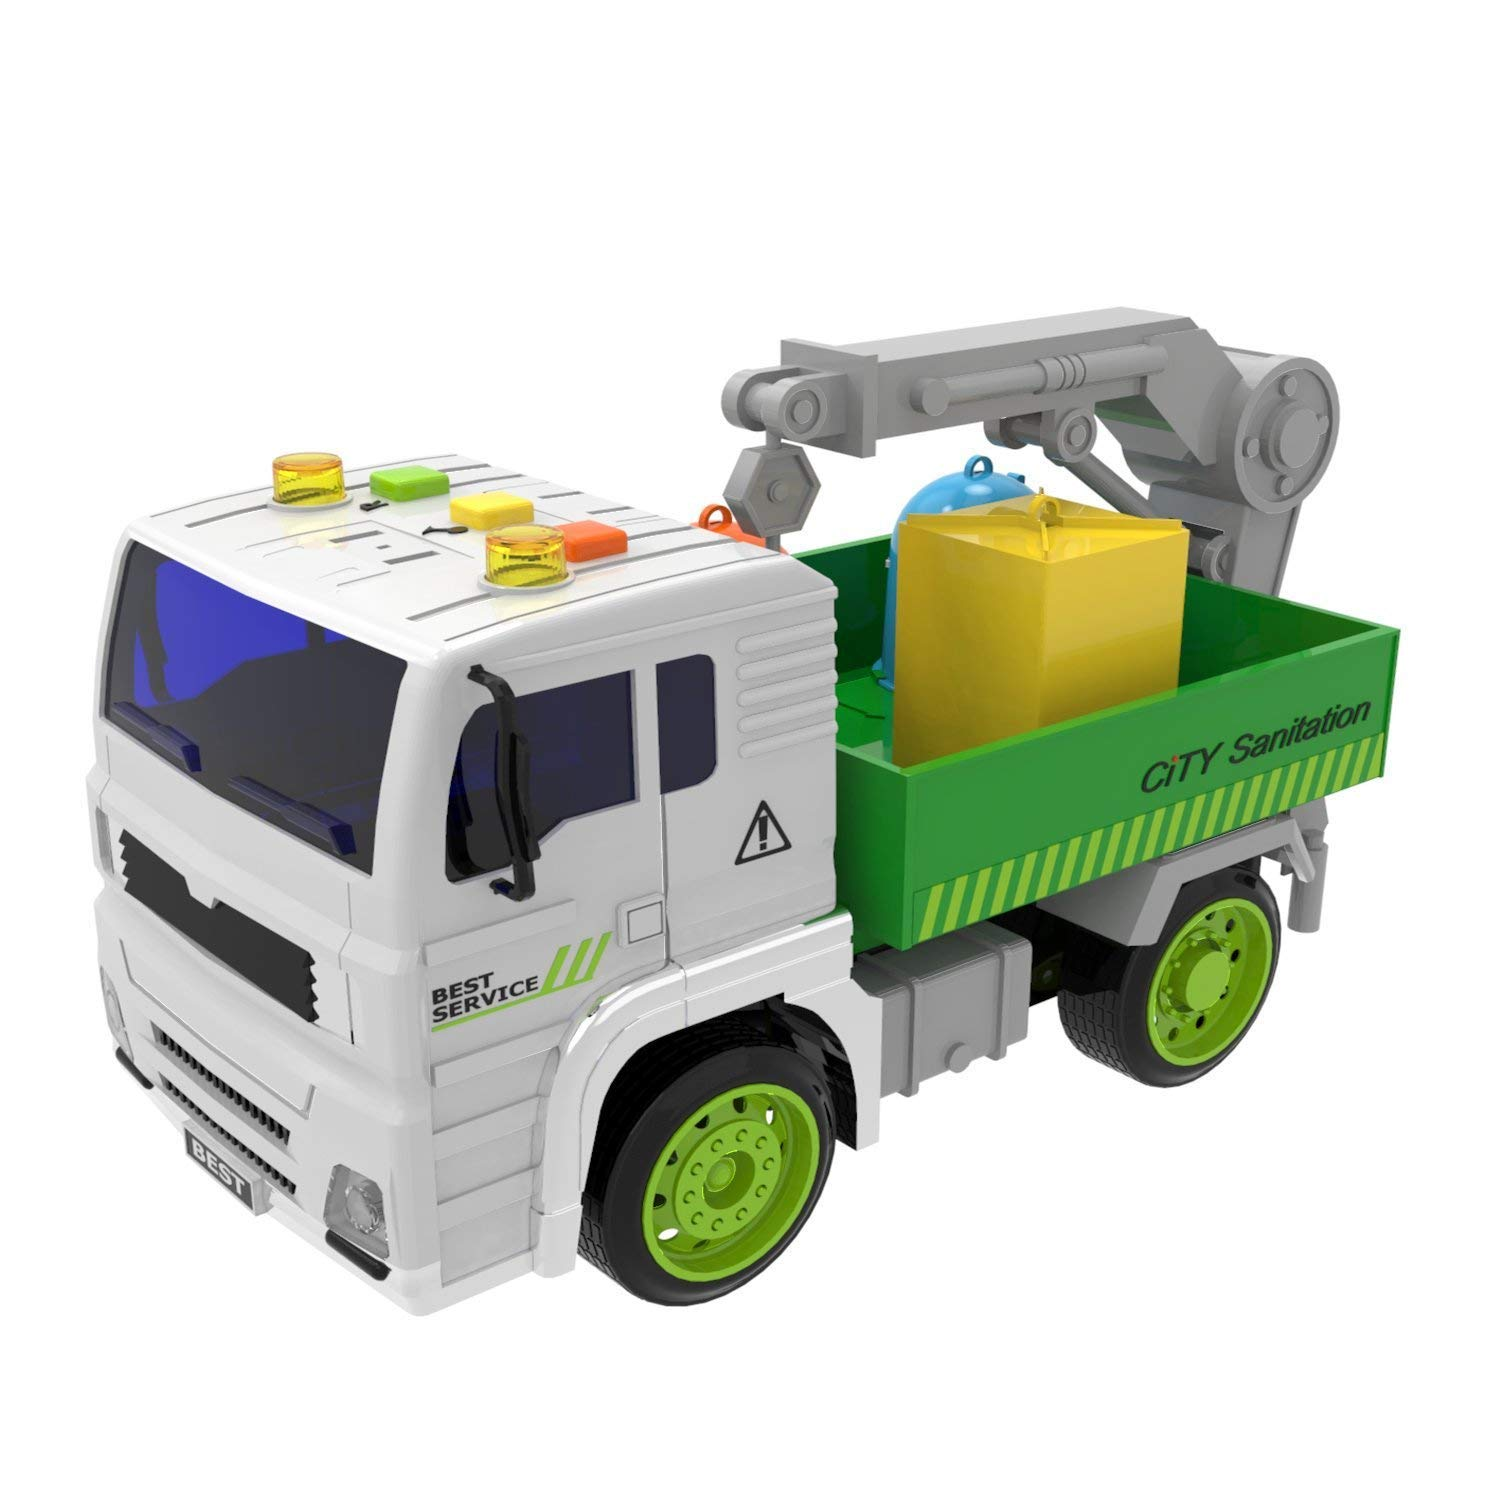 Fun Little Toys Garbage Truck Friction Powered with Light and Sound, 4 Wheels, 3 Dustbins and a Rotatable Hook, 1:20 Simulation Model-City Sanitation Series, Green and White